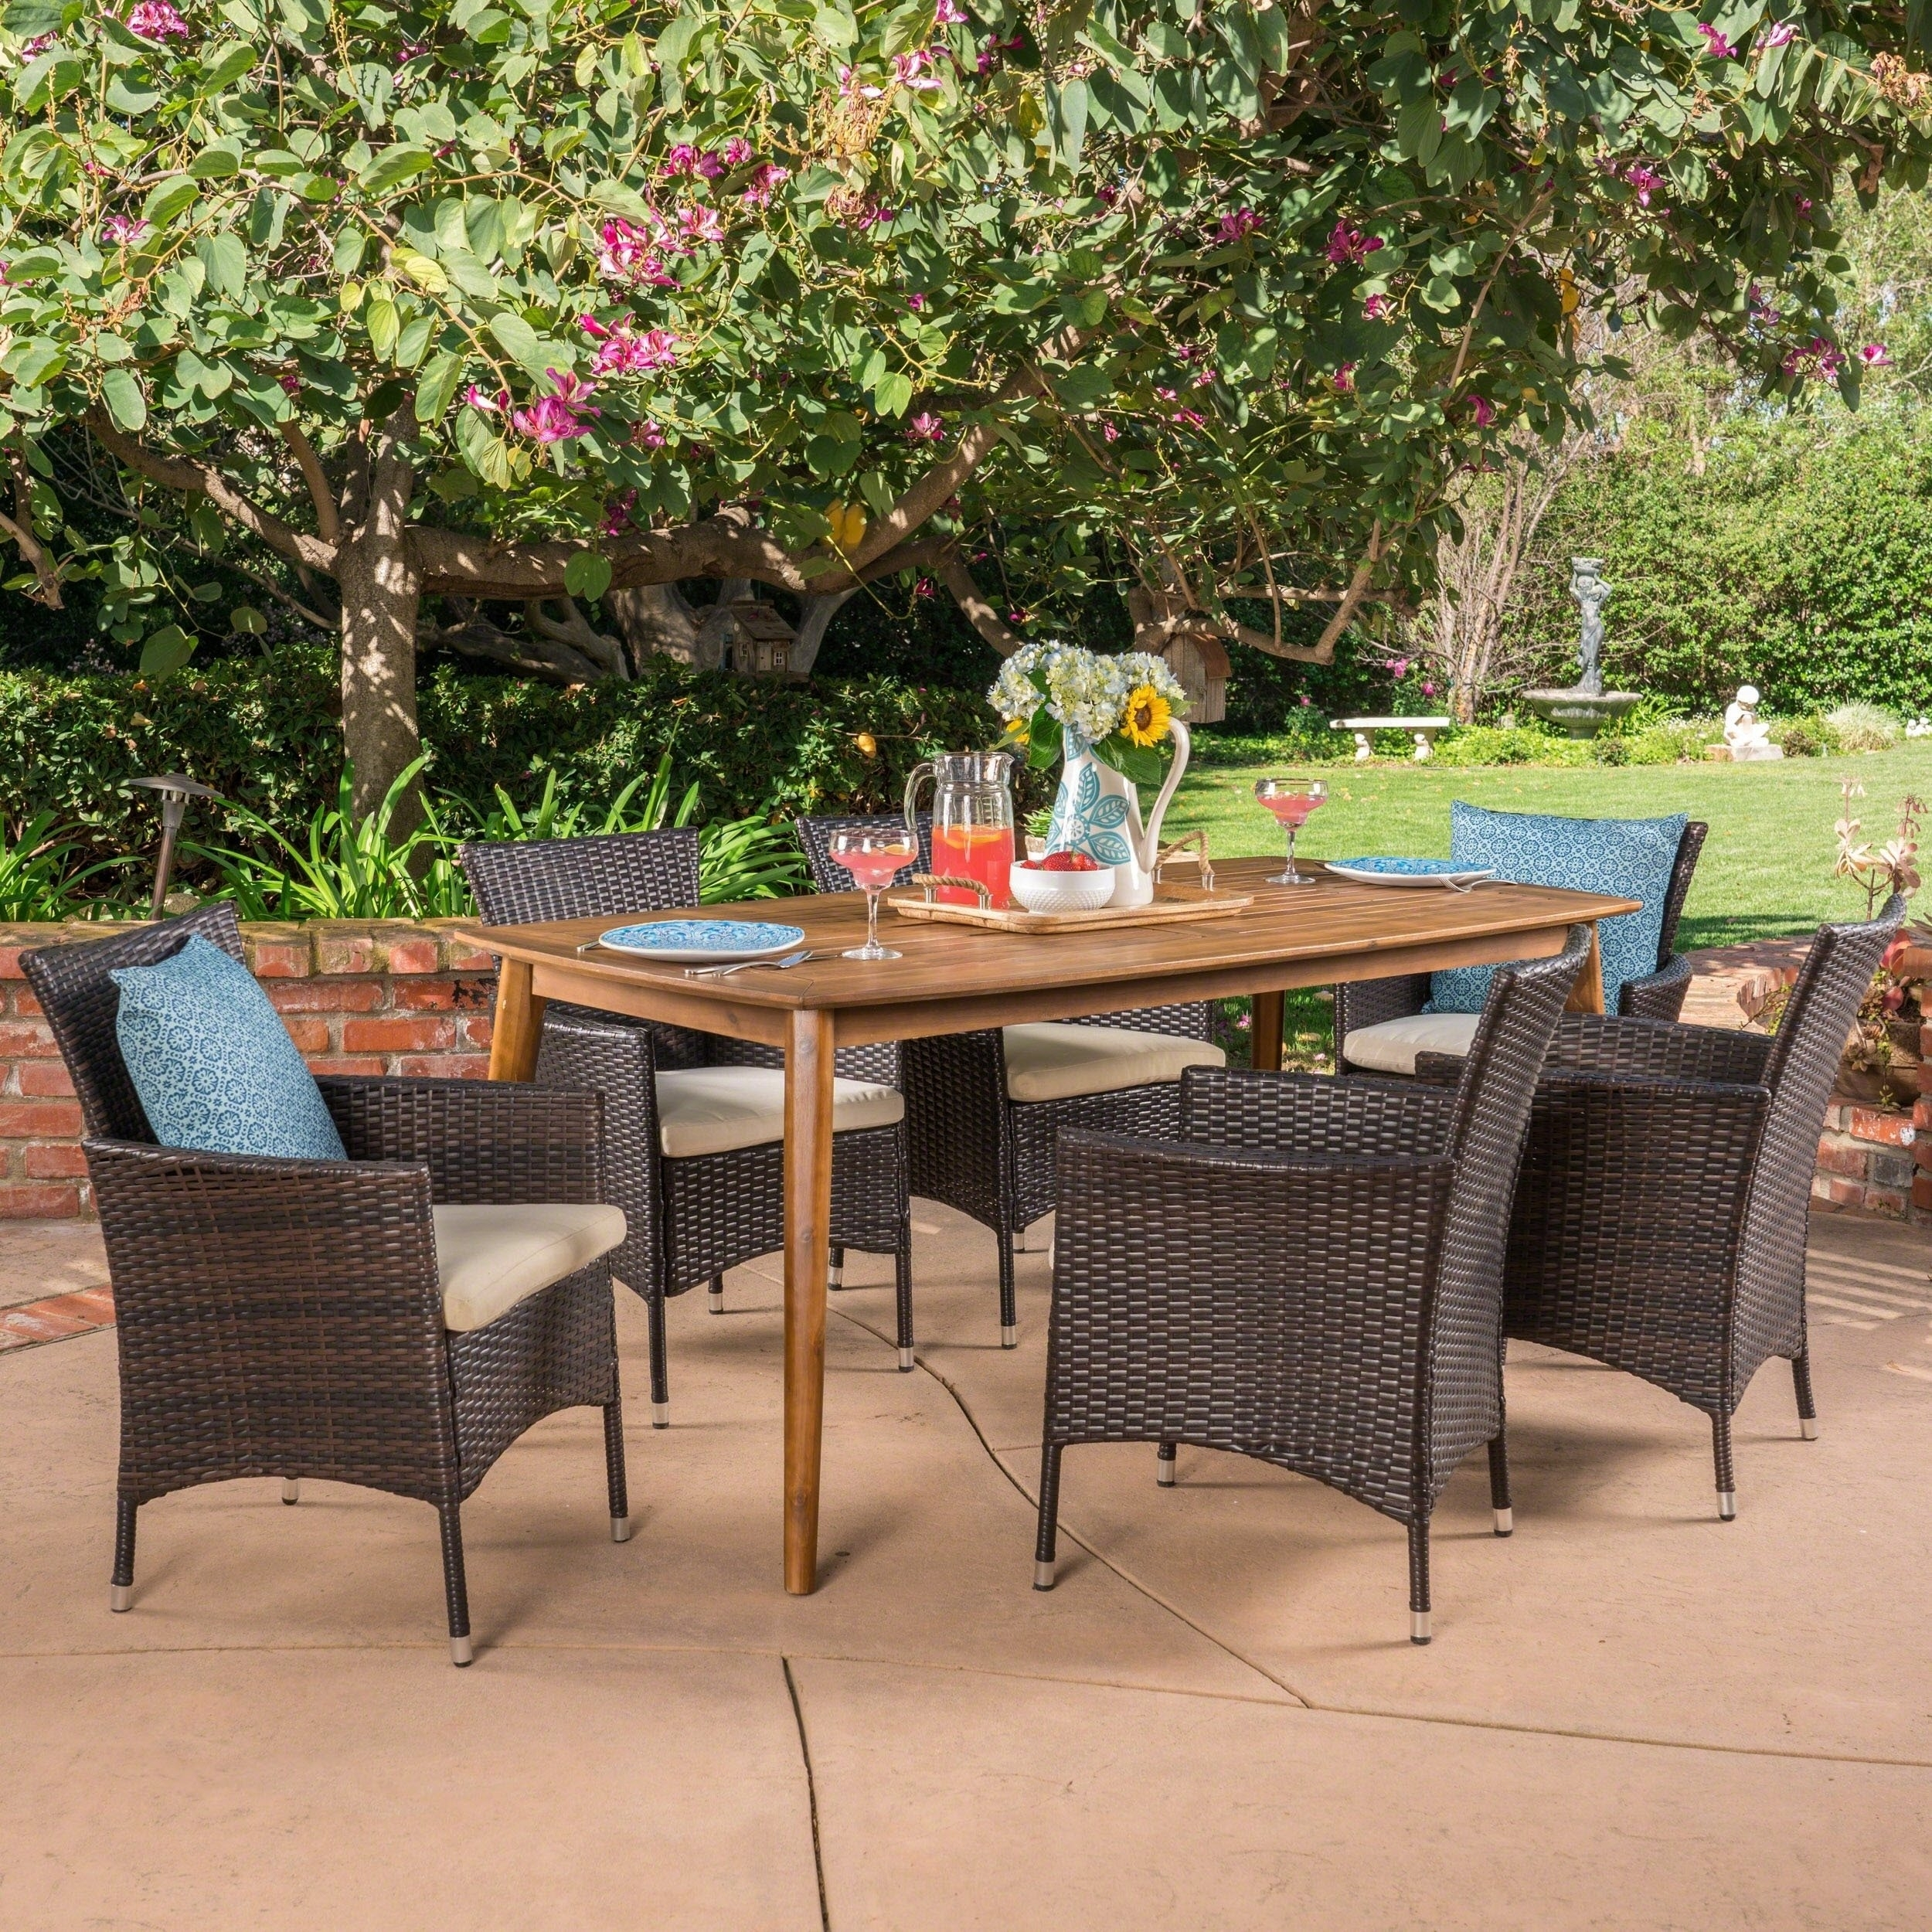 Shop Jaxon Outdoor 7 Piece Multibrown Pe Wicker Dining Set With With Current Jaxon 7 Piece Rectangle Dining Sets With Upholstered Chairs (Image 18 of 20)